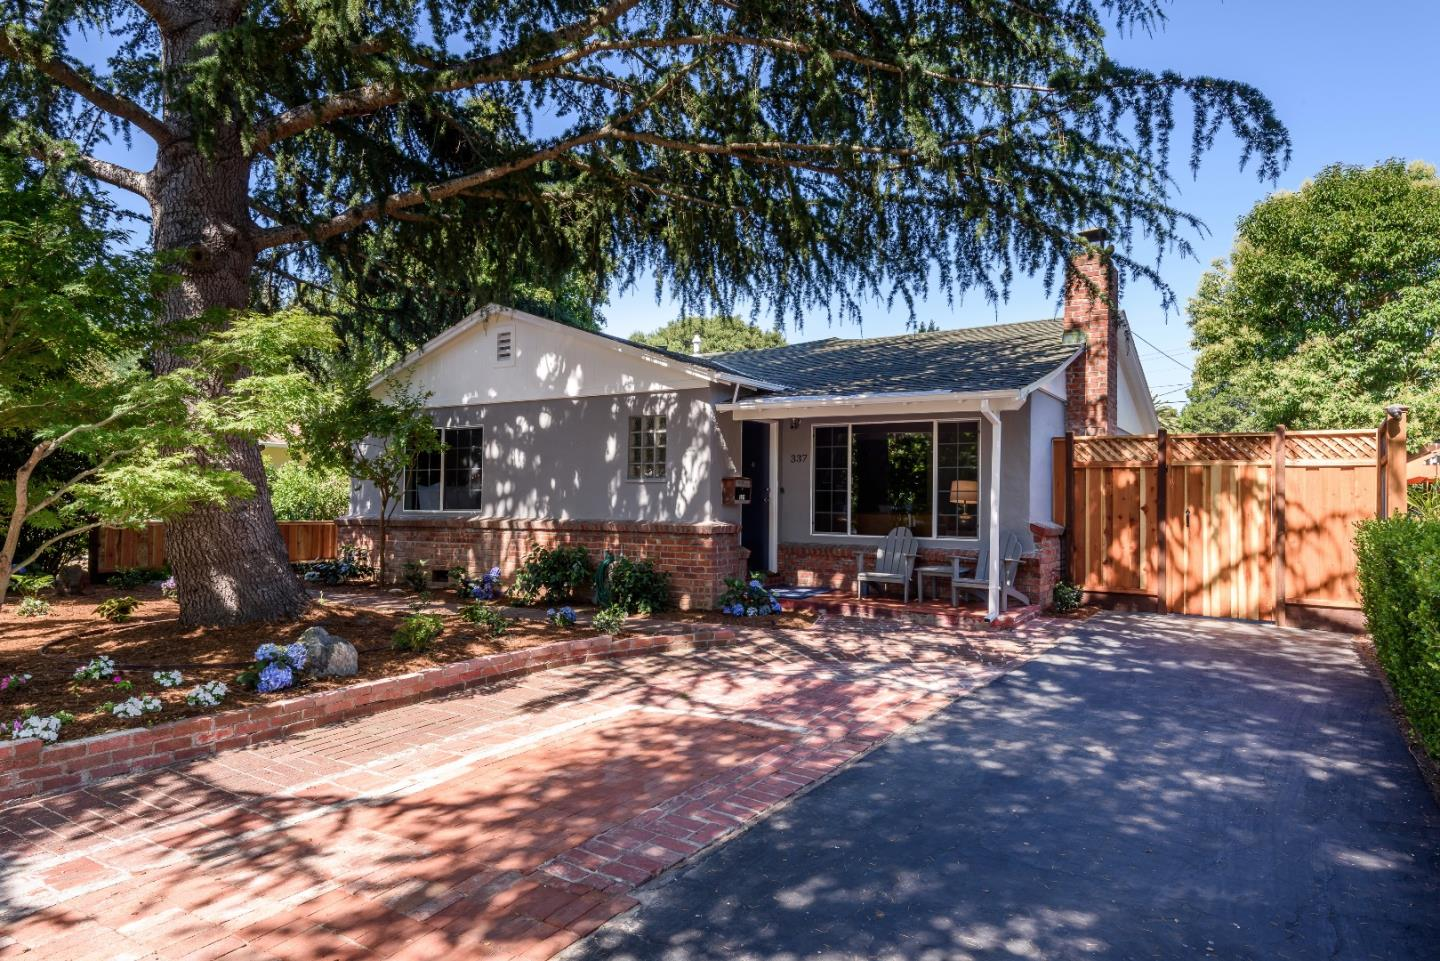 Additional photo for property listing at 337 Central Avenue  Menlo Park, California 94025 United States